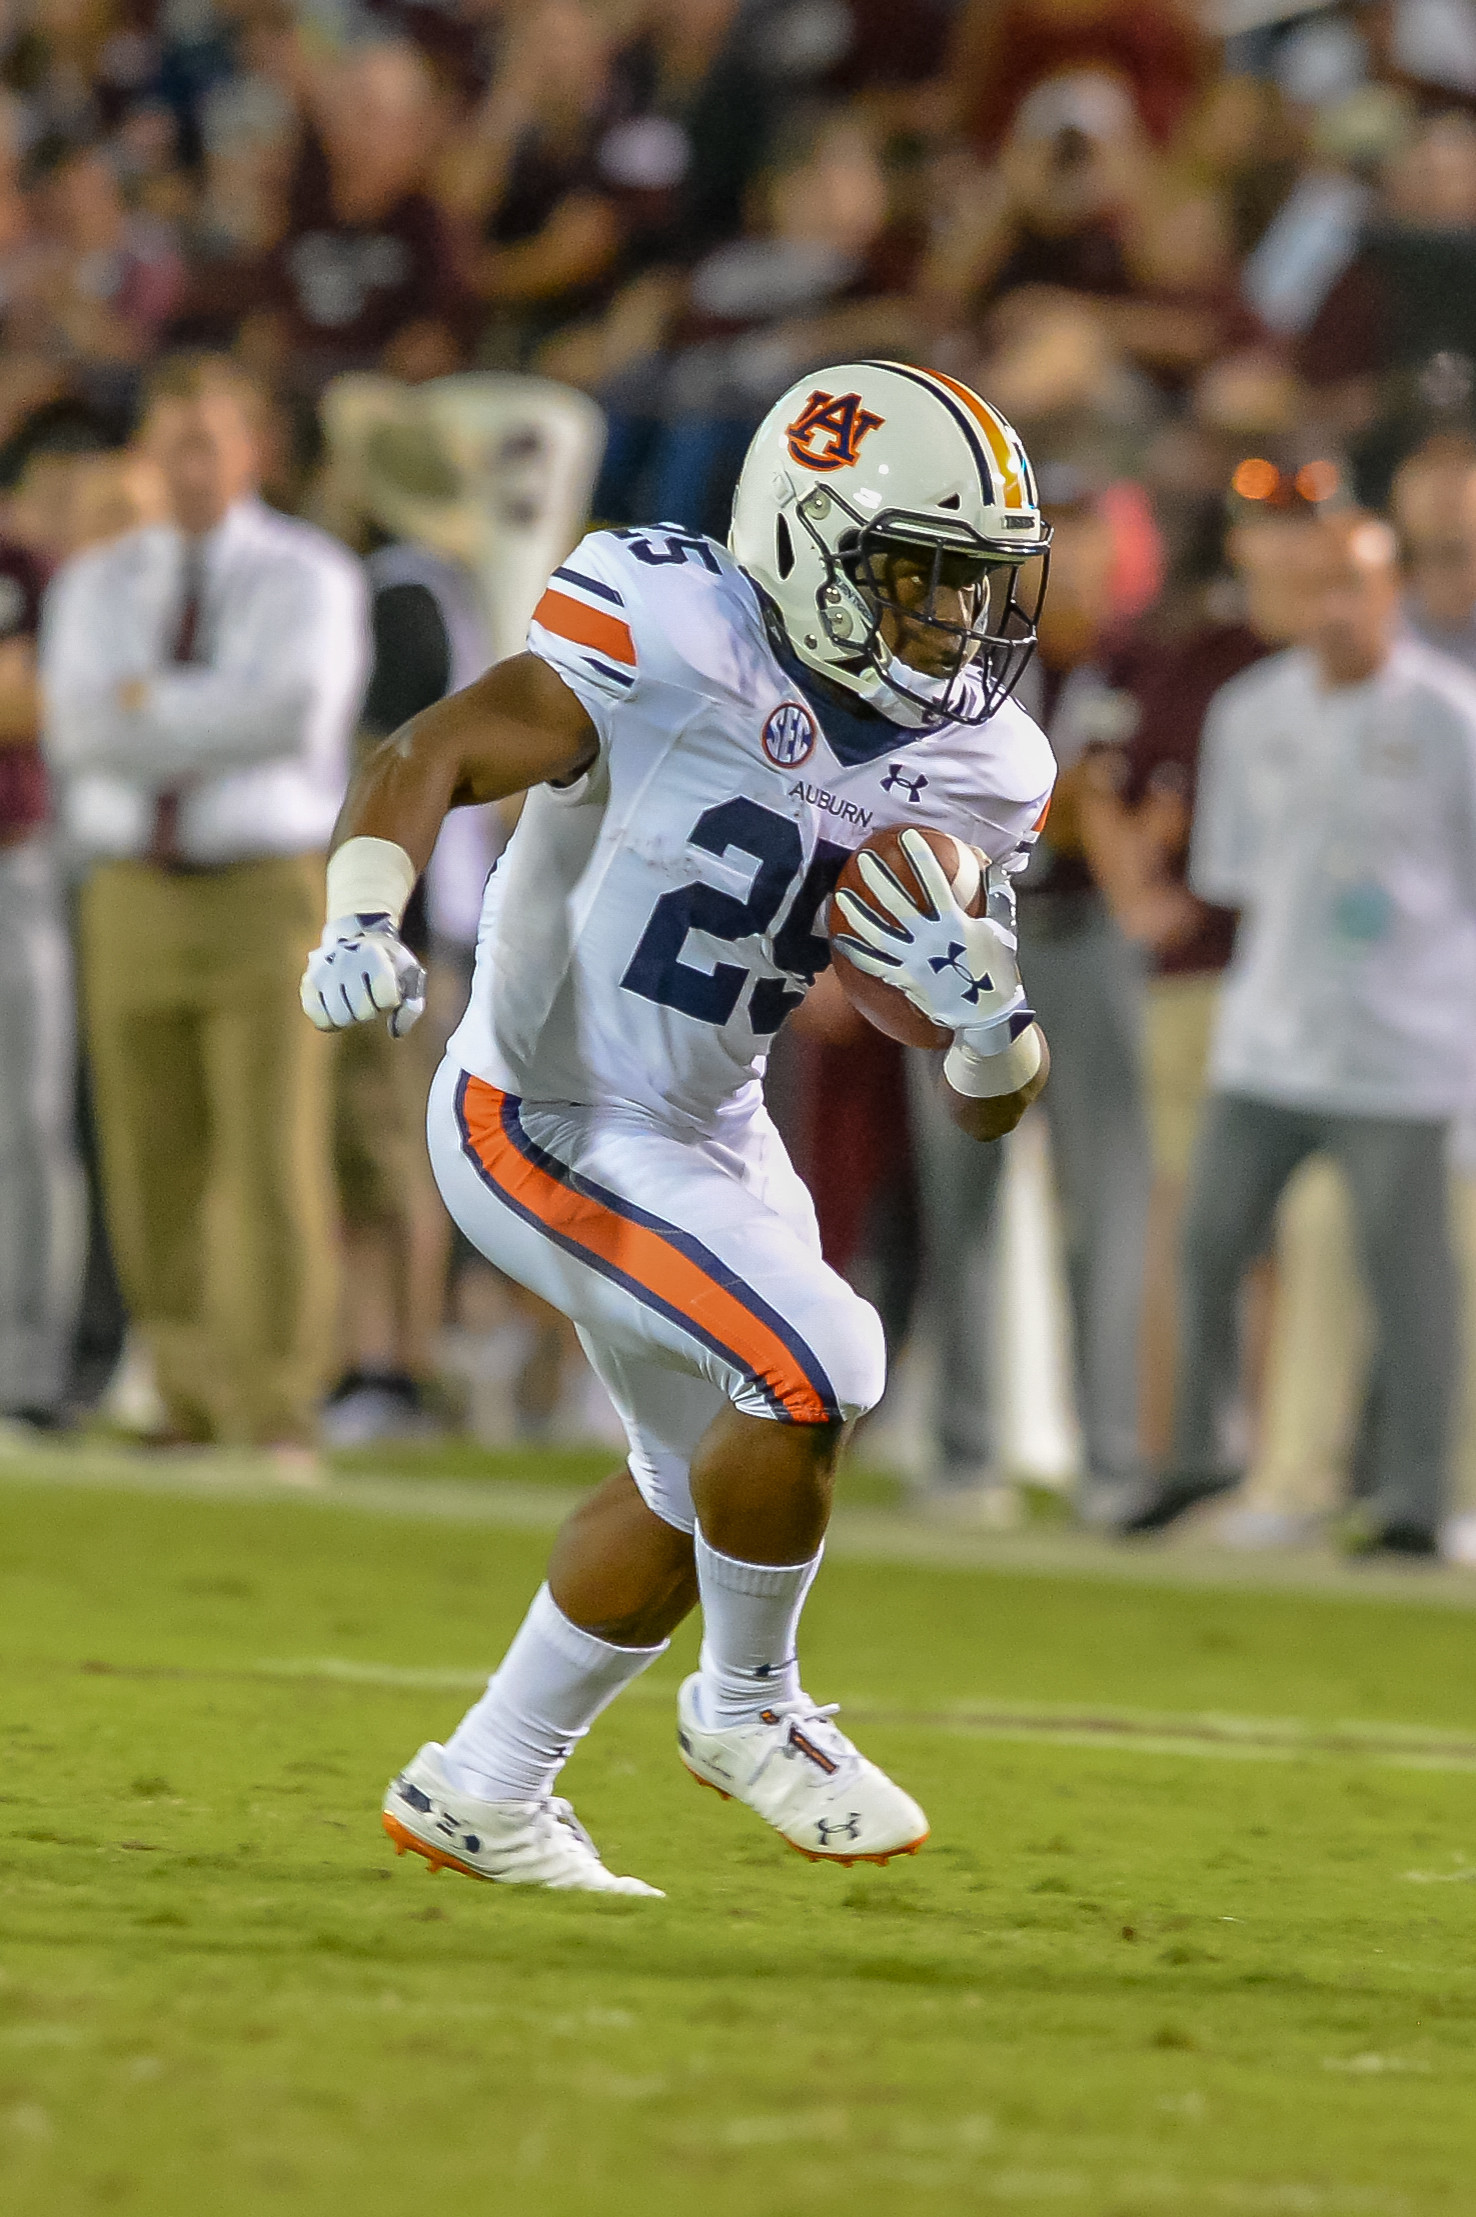 Auburn Tigers running back Shaun Shivers (25) runs during the first half of Saturday's game, at Davis Wade Stadium in Starkville, MS. Daily Mountain Eagle -  Jeff Johnsey